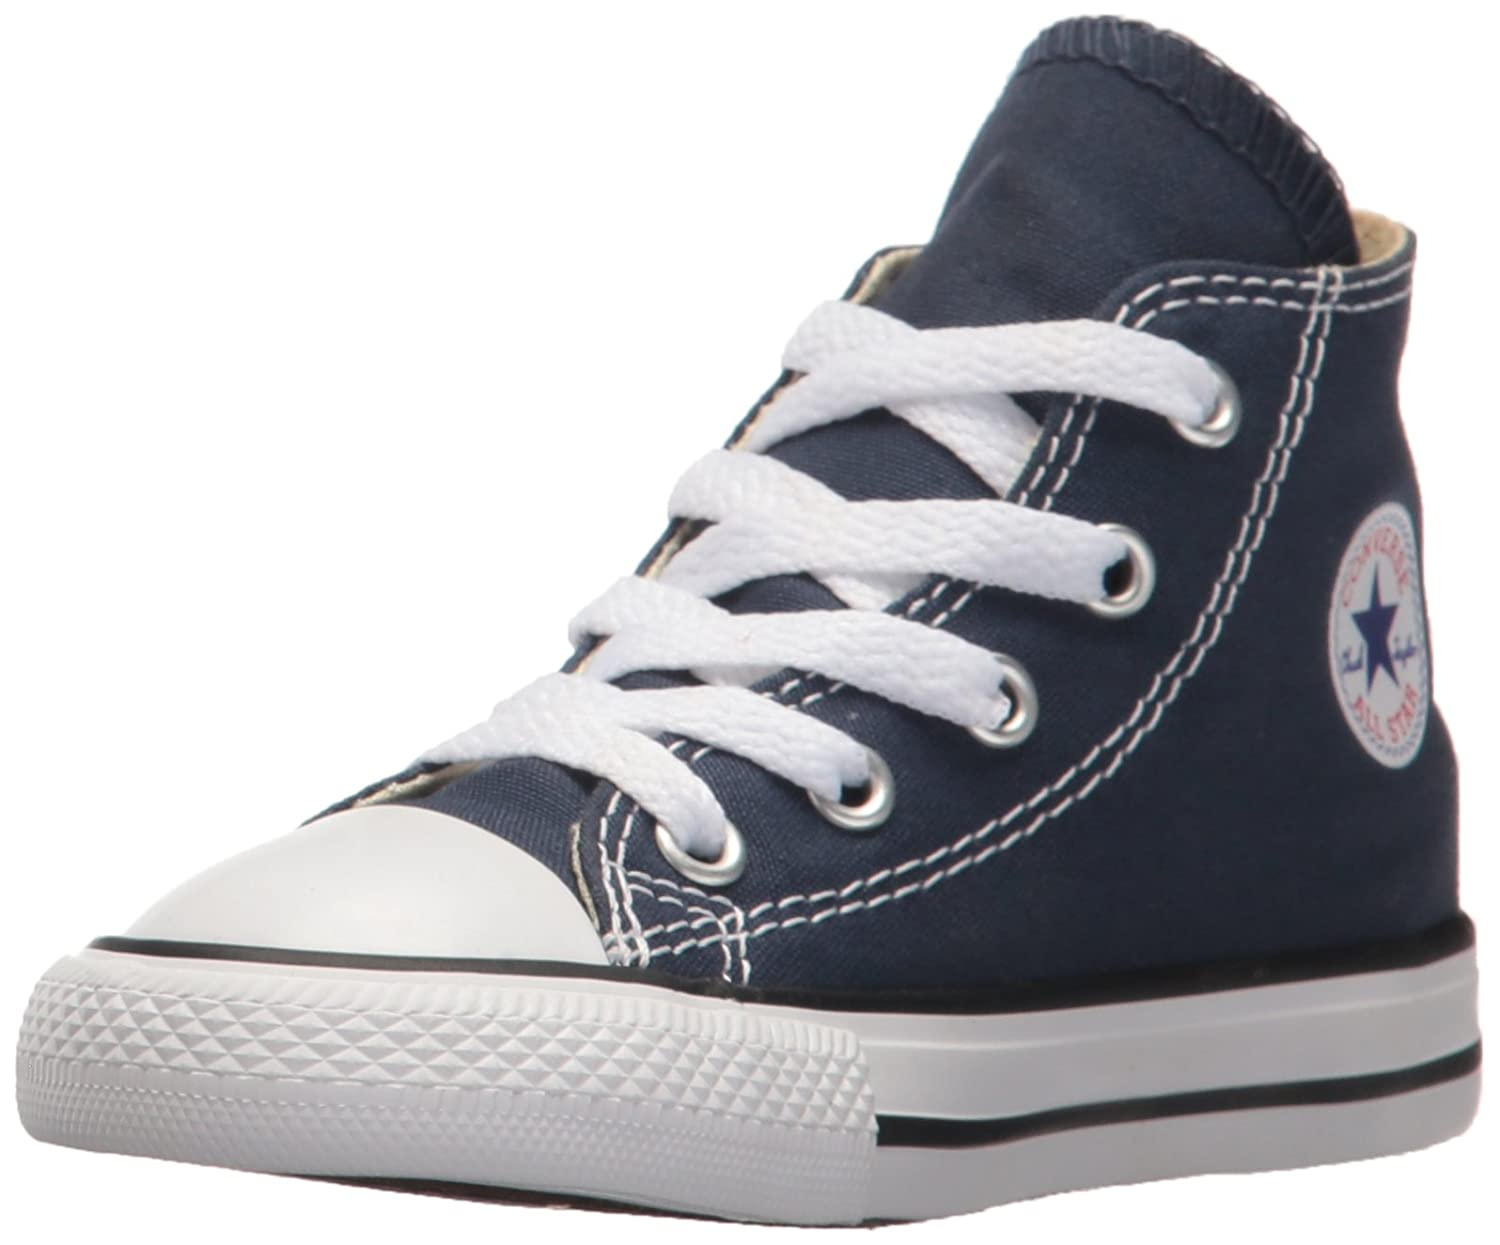 22b1f7191a7d47 CONVERSE Chuck Taylor All Star Core